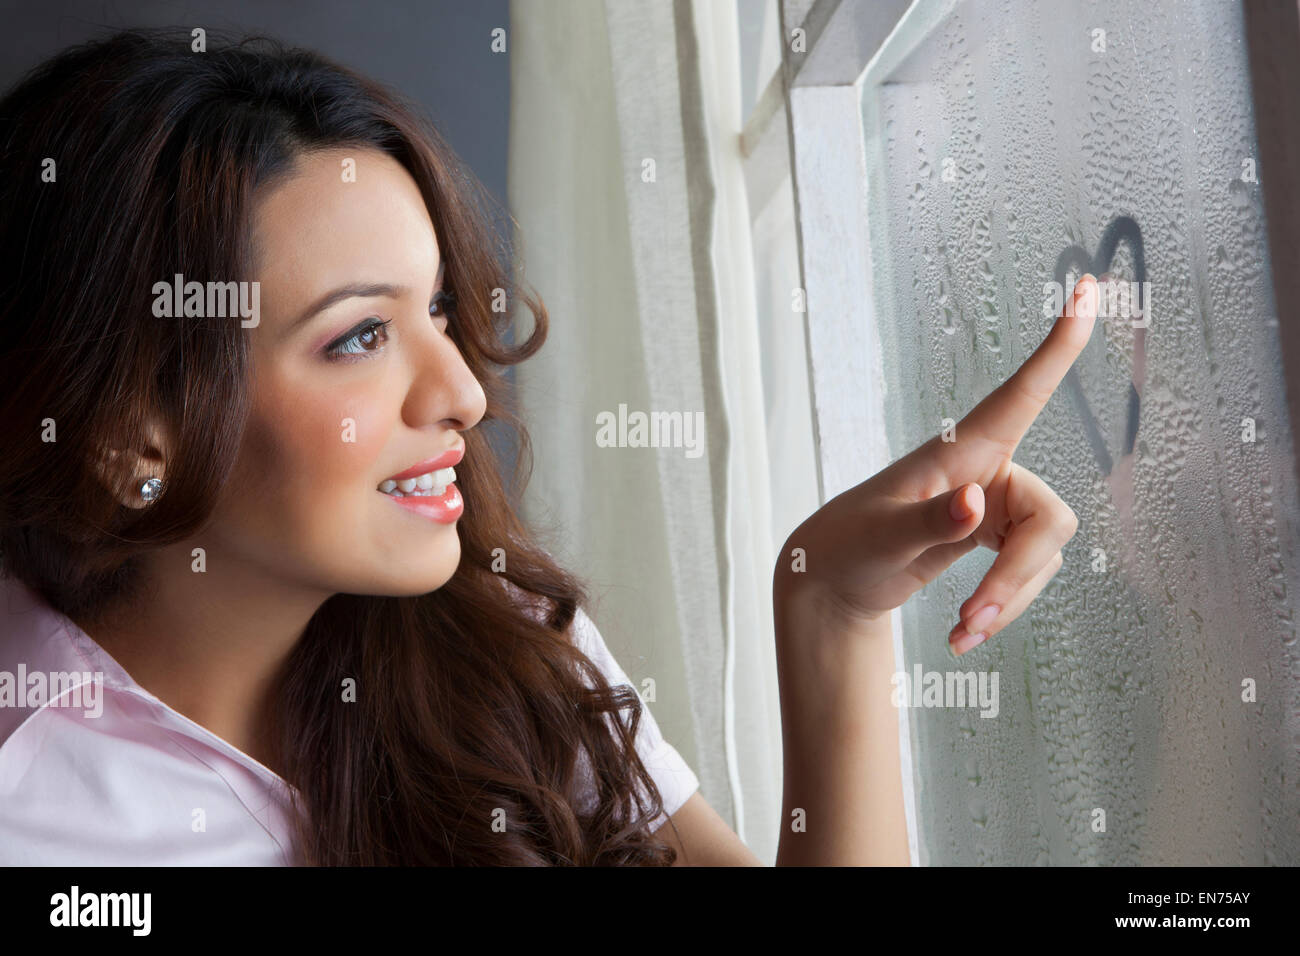 Woman drawing heart on window Stock Photo